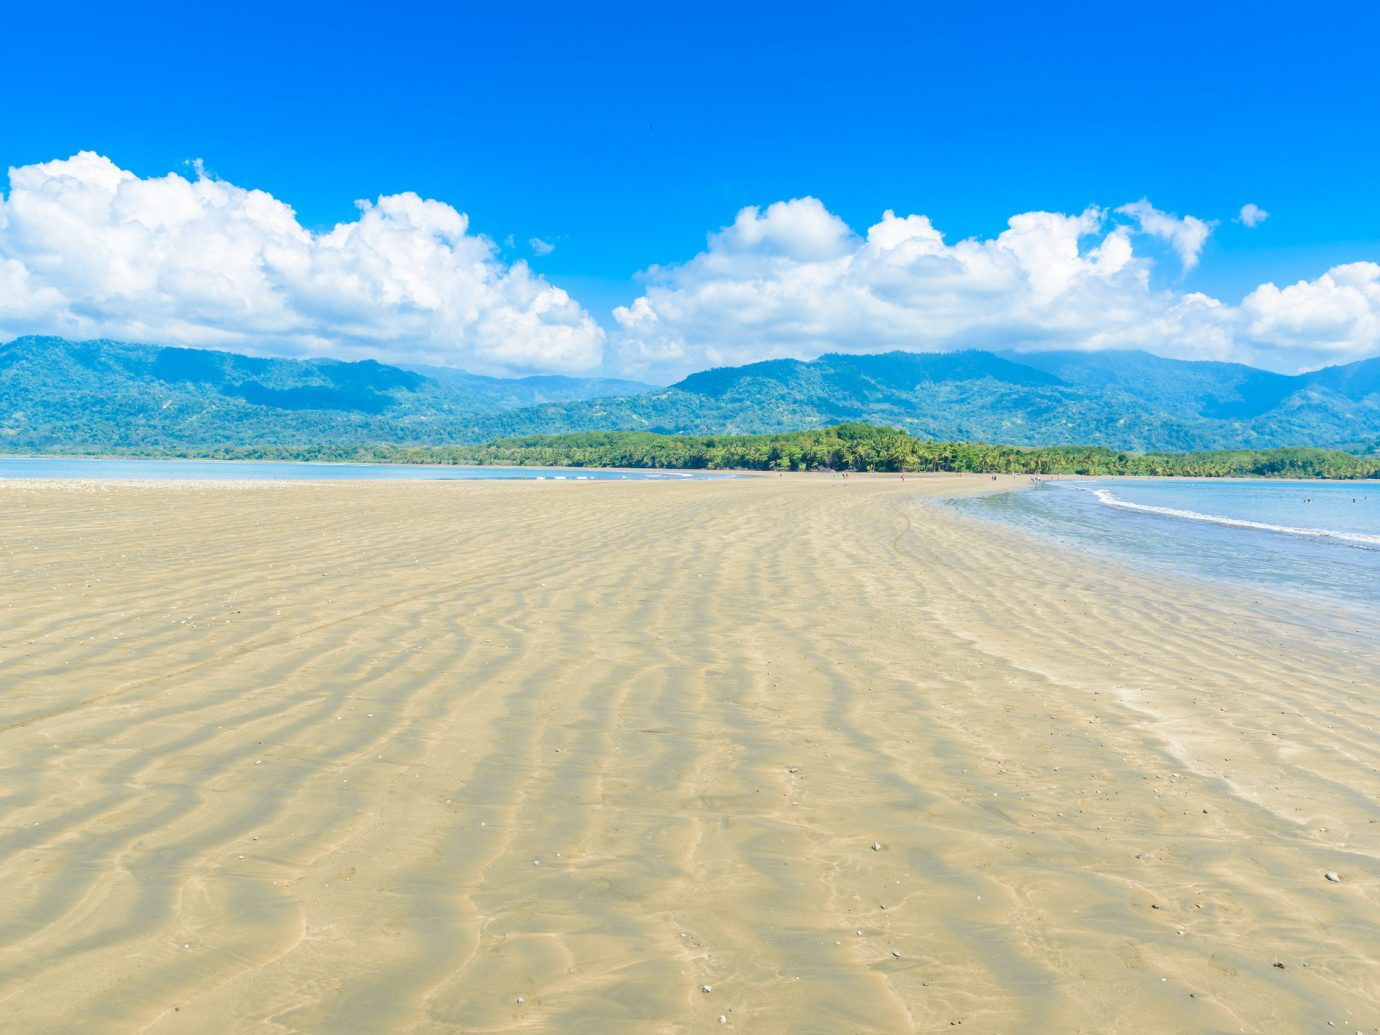 Playa Hermosa beach in Costa Rica